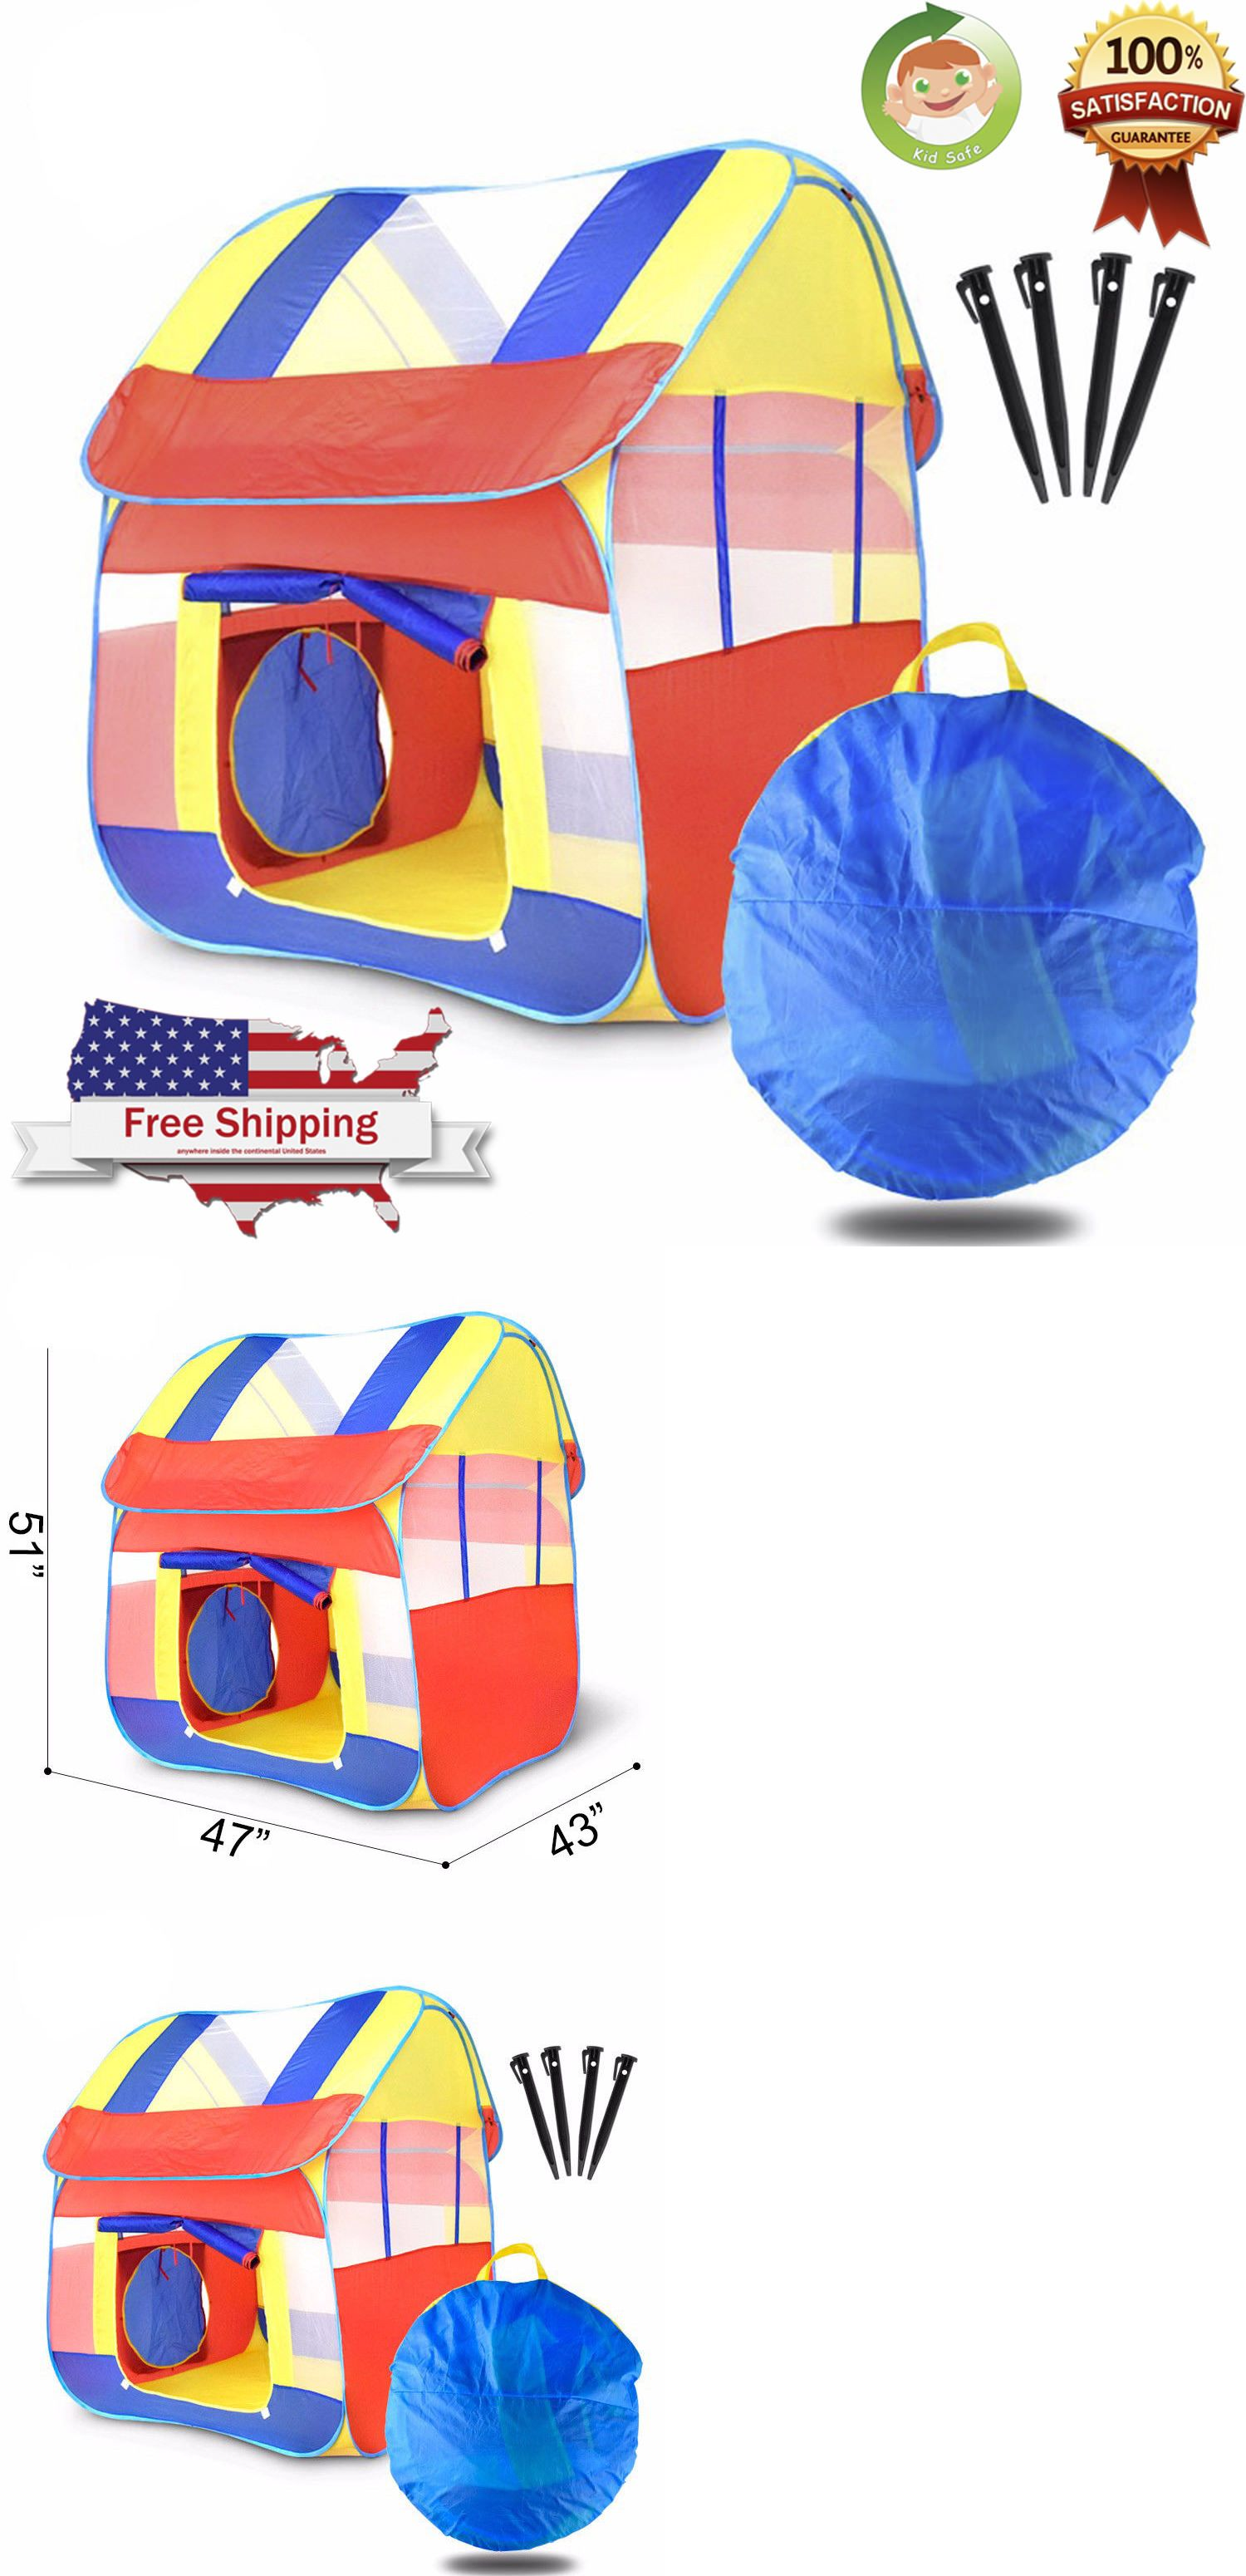 Tents Tunnels and Playhuts 145994 Portable Kid Baby Play House Indoor Outdoor Toy Tent Game Playhut Pop Up Tent -u003e BUY IT NOW ONLY $20.99 on #eBay #tents ...  sc 1 st  Pinterest & Tents Tunnels and Playhuts 145994: Portable Kid Baby Play House ...